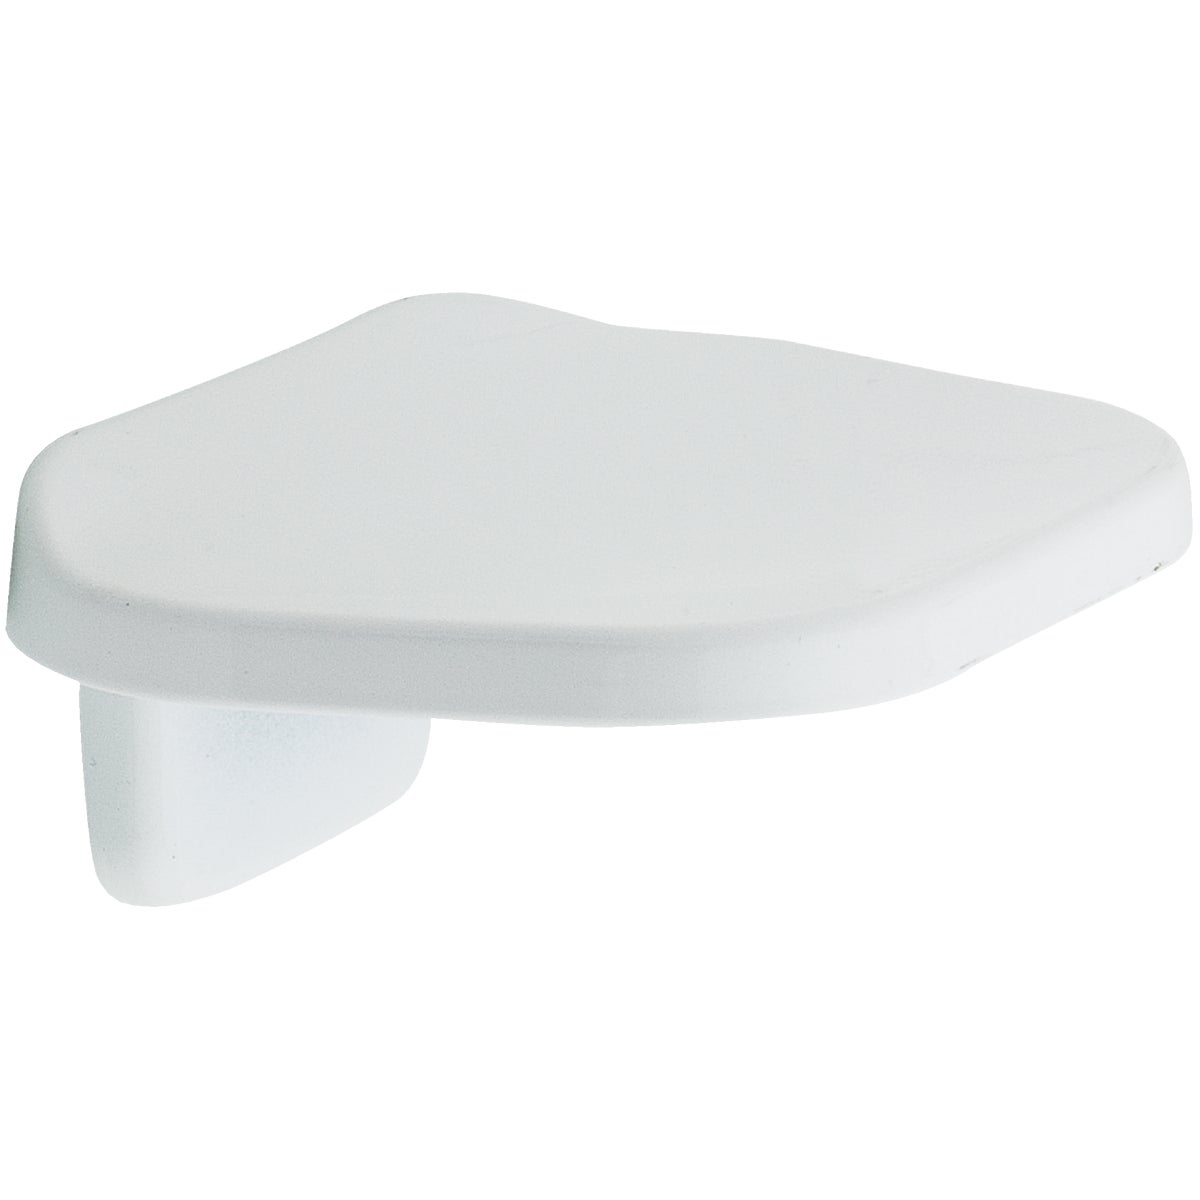 WHITE SOAP DISH - 409463 by Do it Best